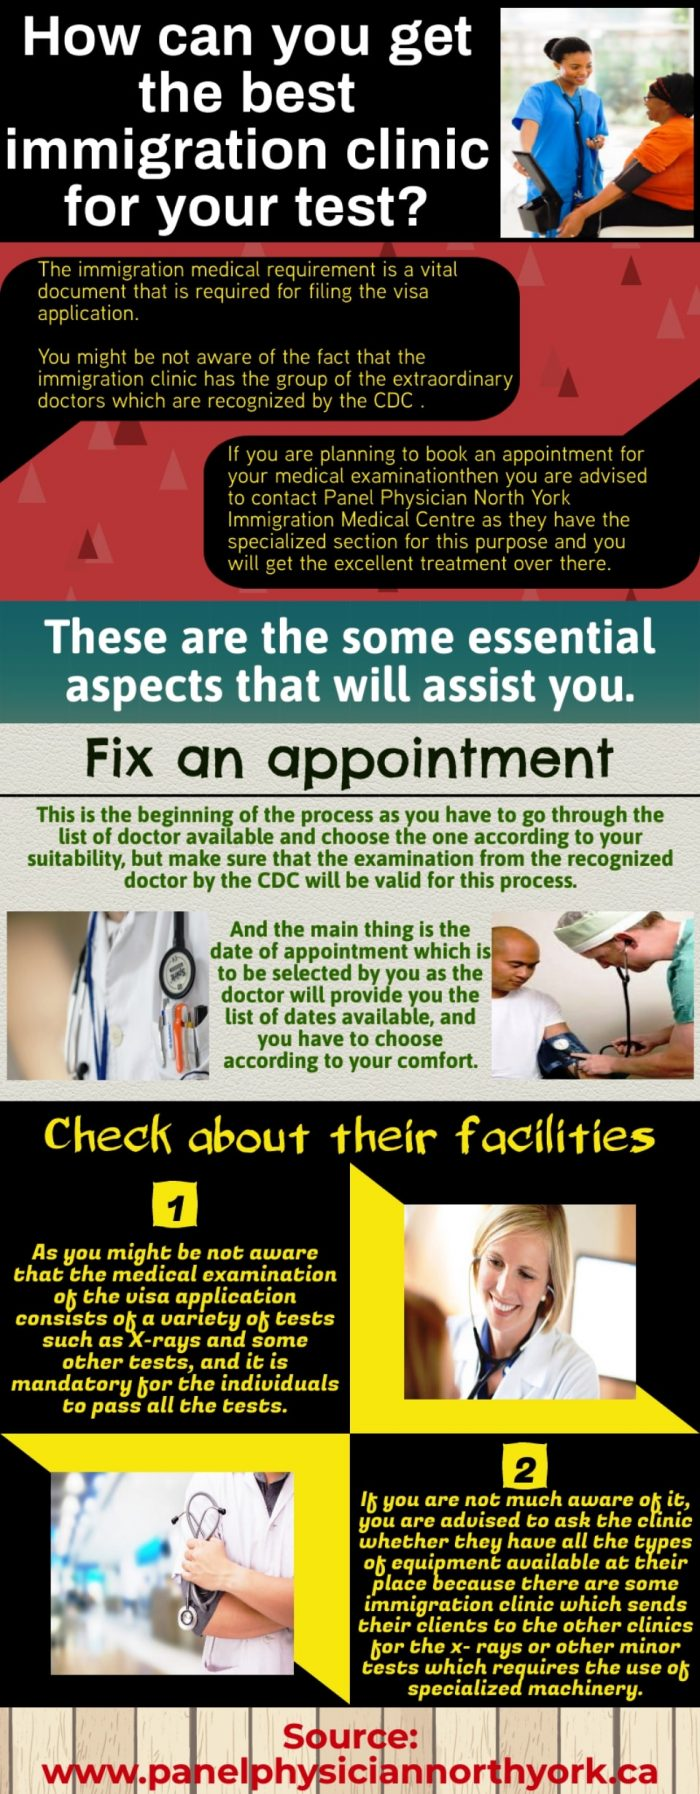 Well experienced staff Immigration Medical Centre